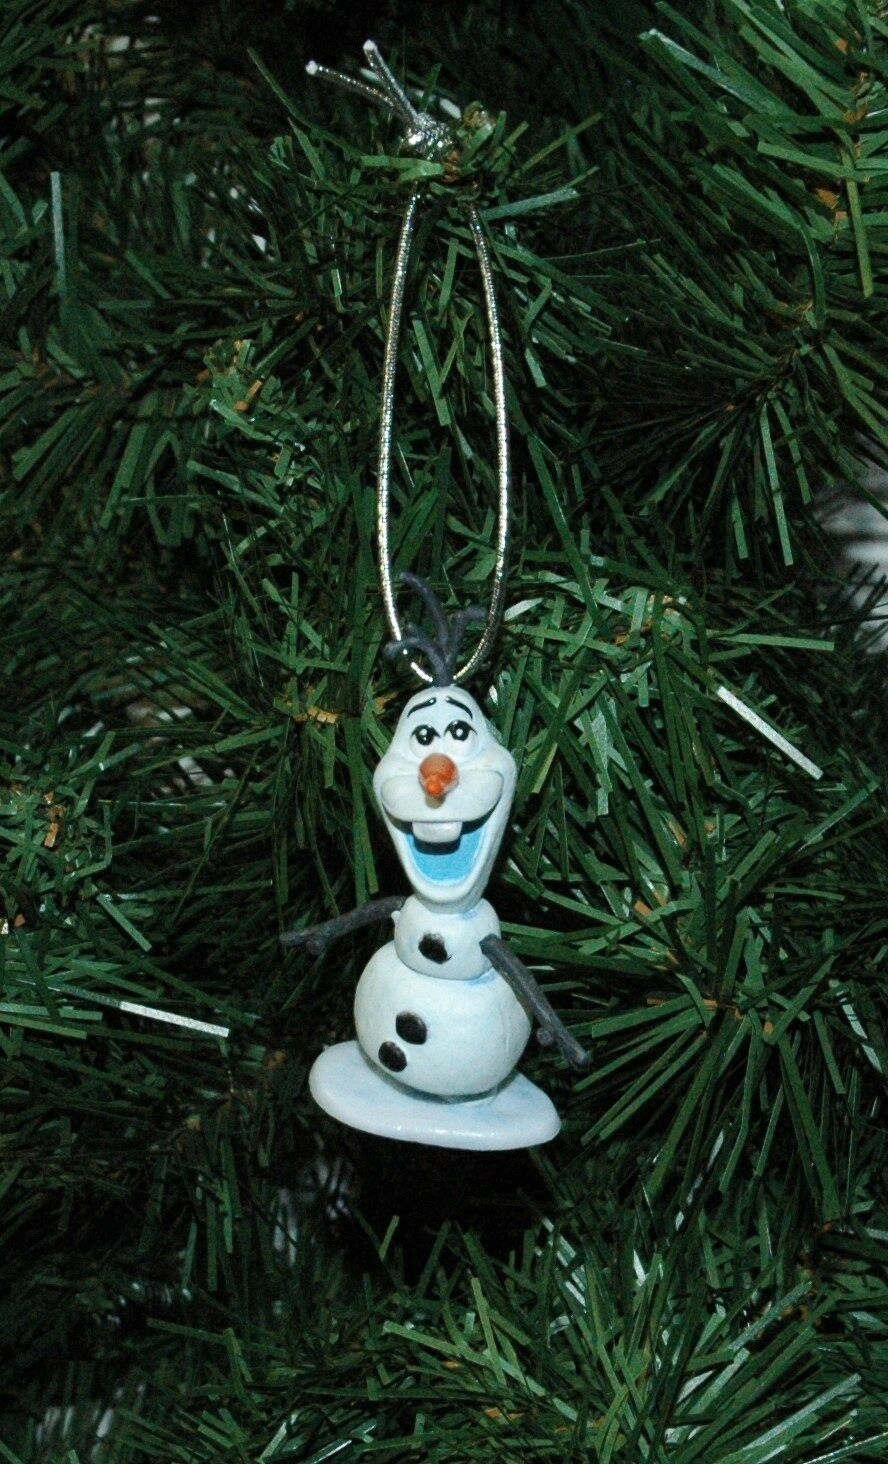 OLAF THE SNOWMAN From The Movie Frozen Christmas Ornament - $9.95 ...